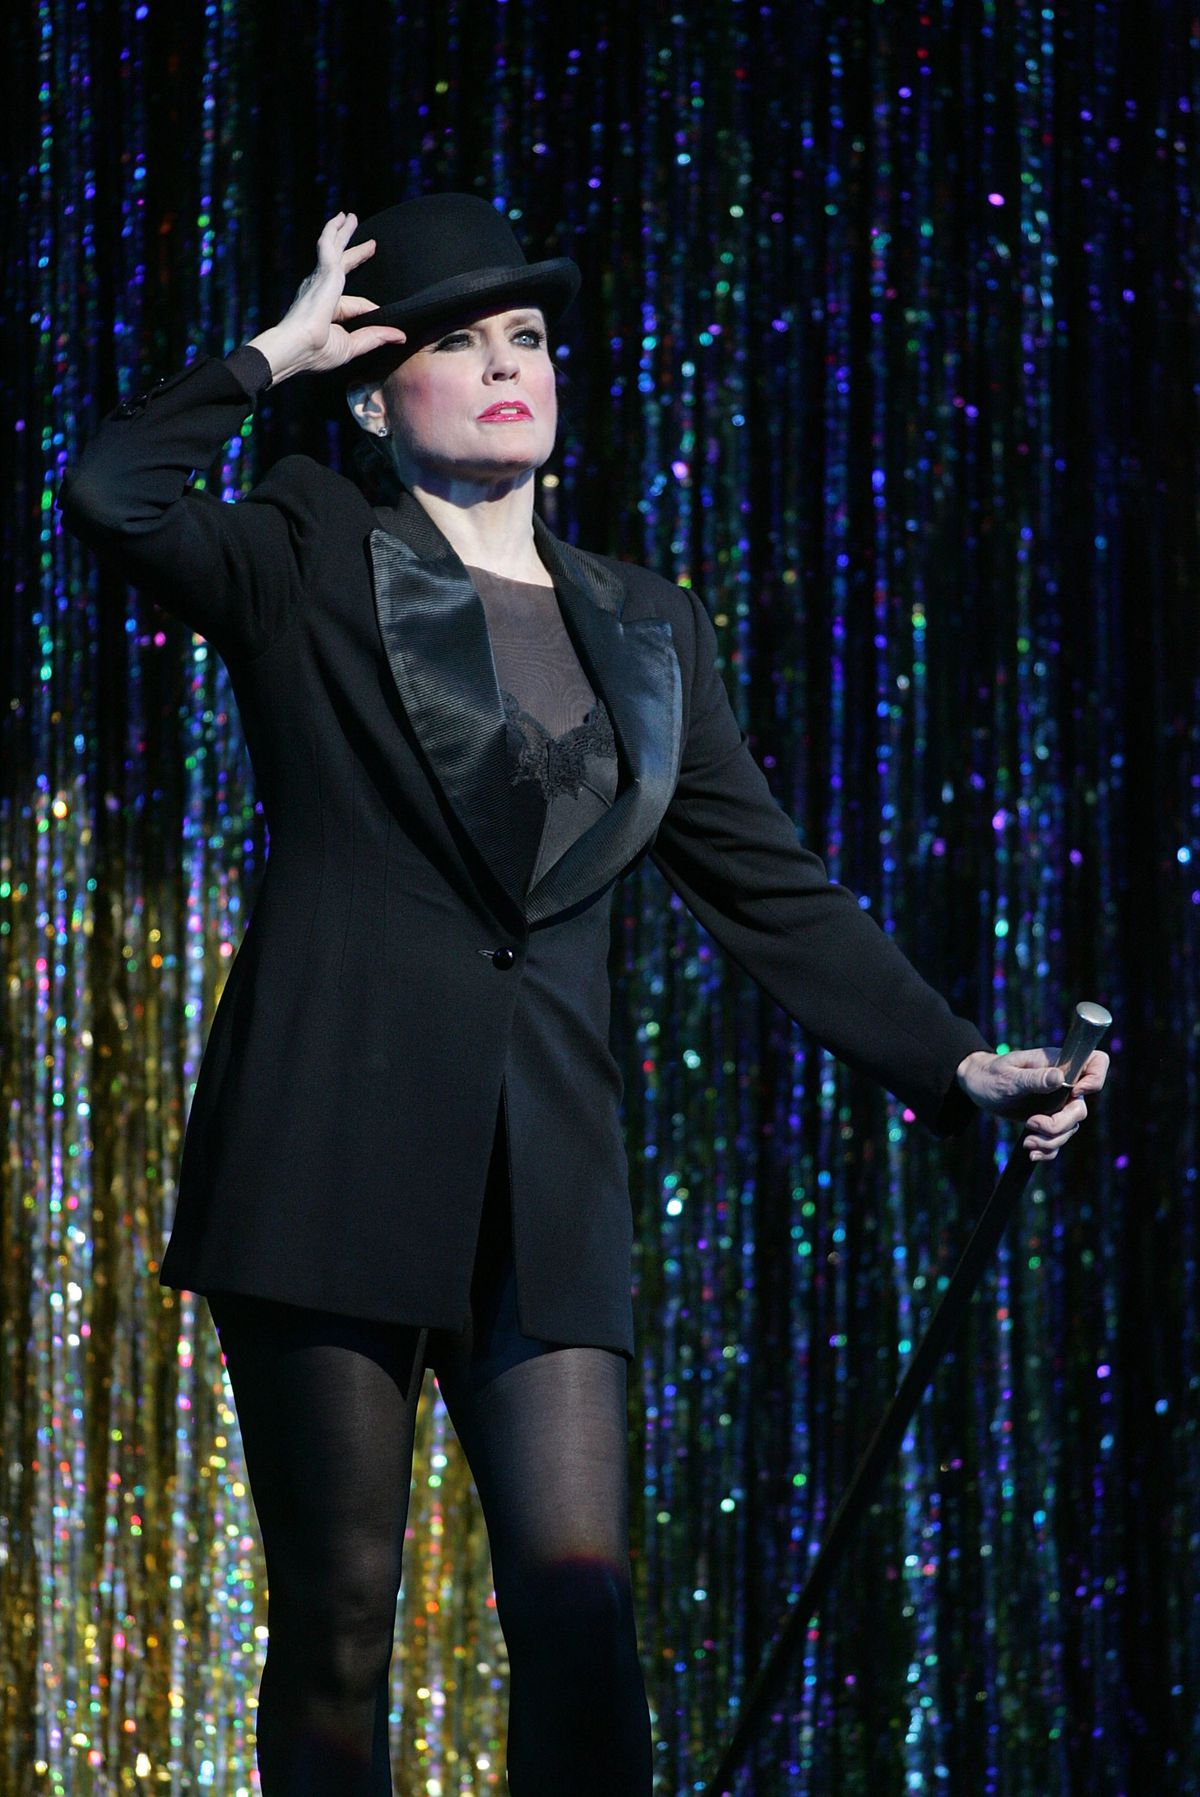 """Actress, dancer and choreographer Ann Reinking has died at age 71. She died on December 12, 2020. The Tony Award and Olivier Award winner was best known for her roles in """"Chicago"""" on Broadway, """"Annie"""", """"Micki & Maude"""", """"All That Jazz"""" and """"Fosse""""."""